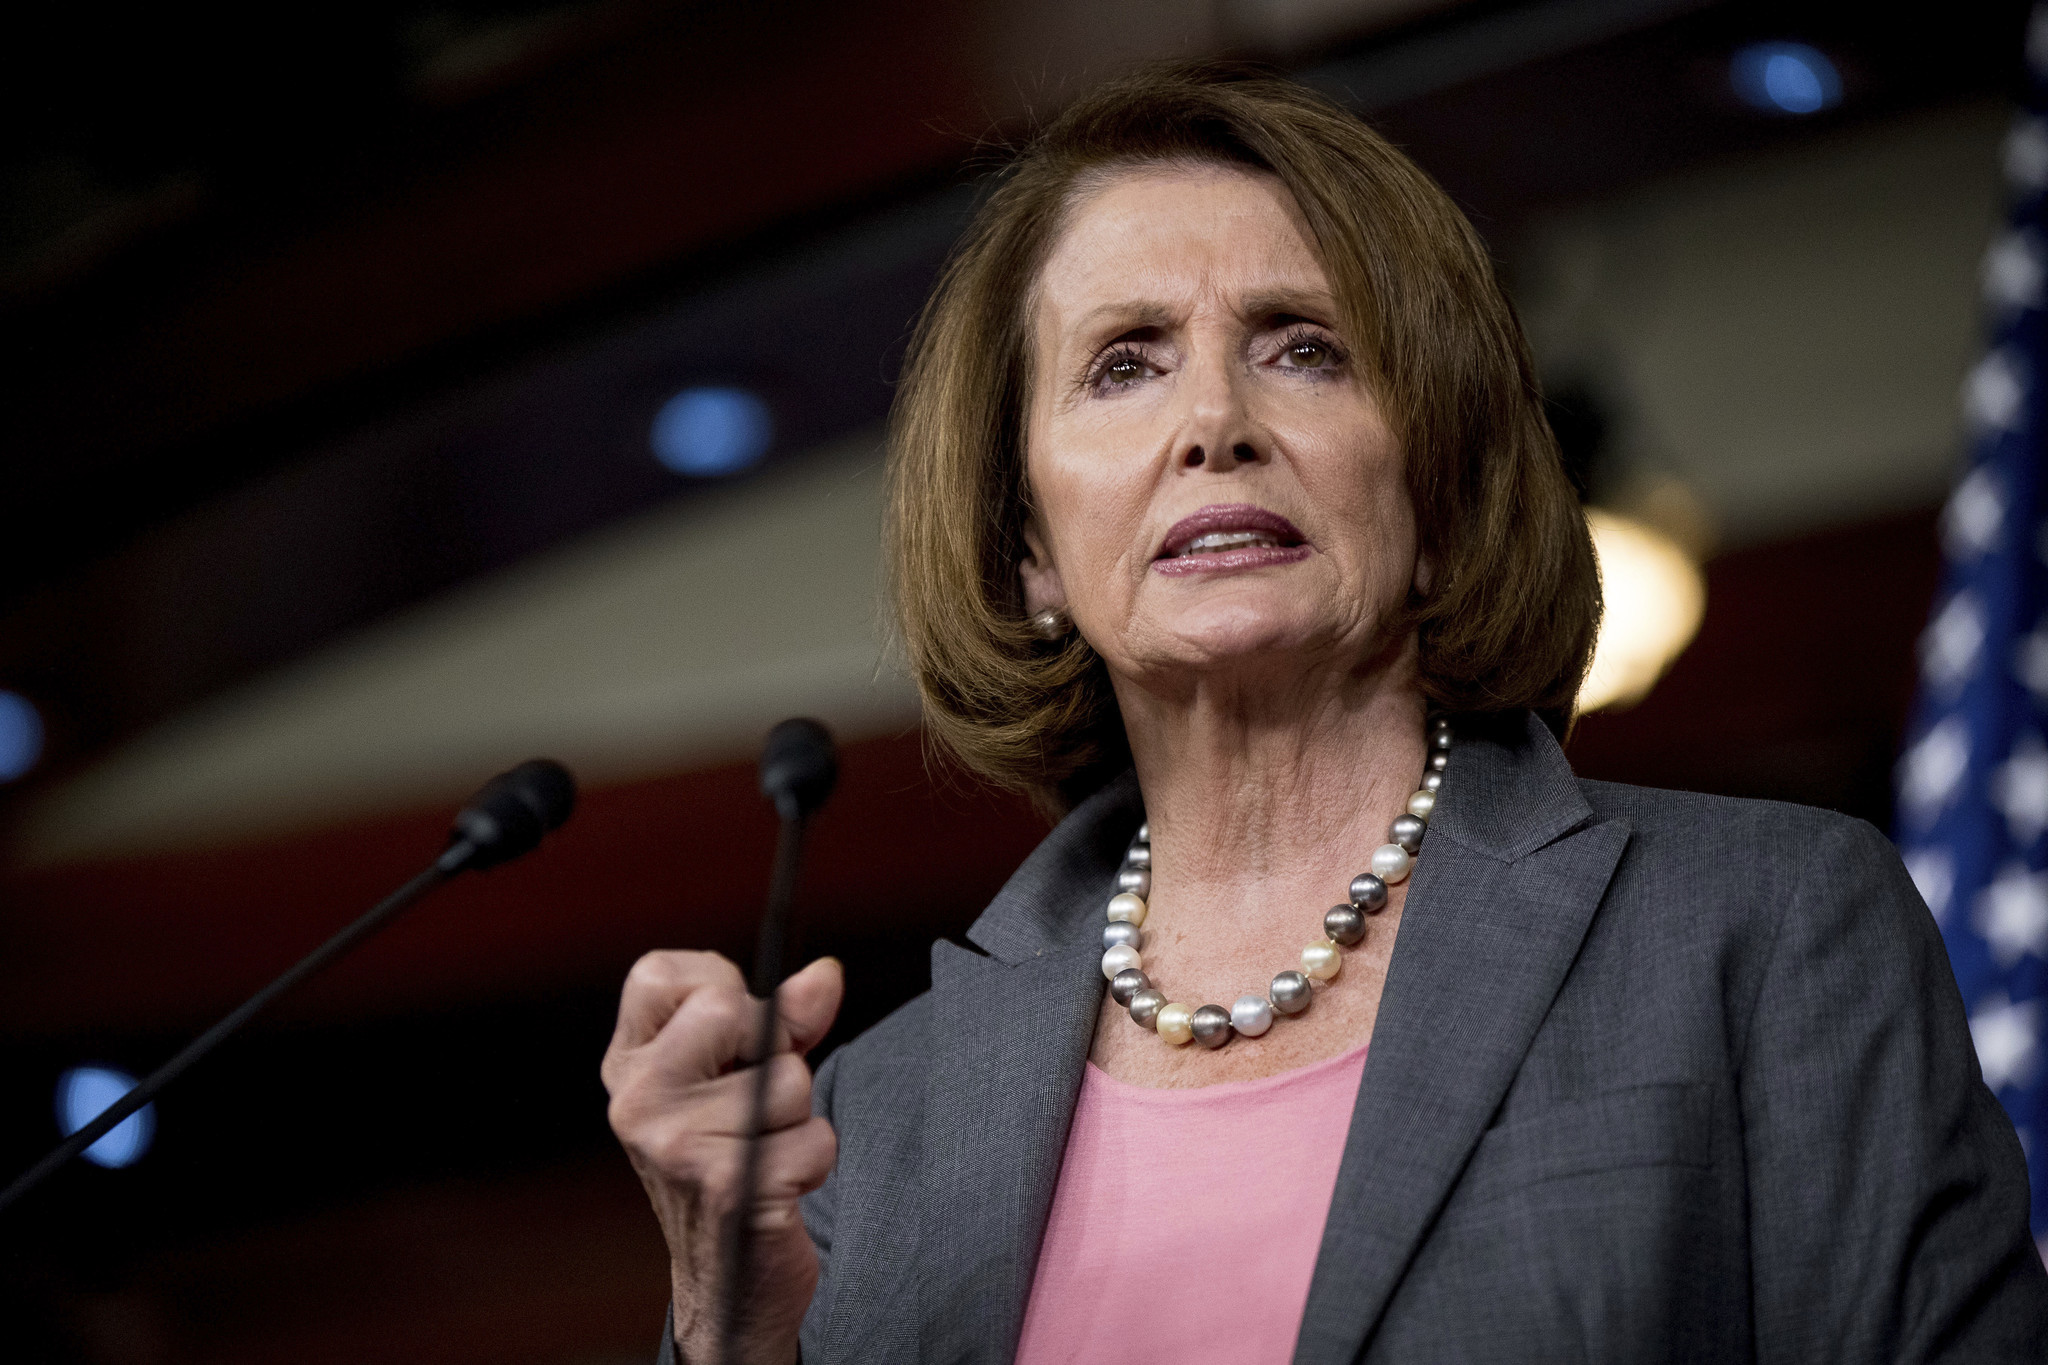 nancy pelosi - photo #19